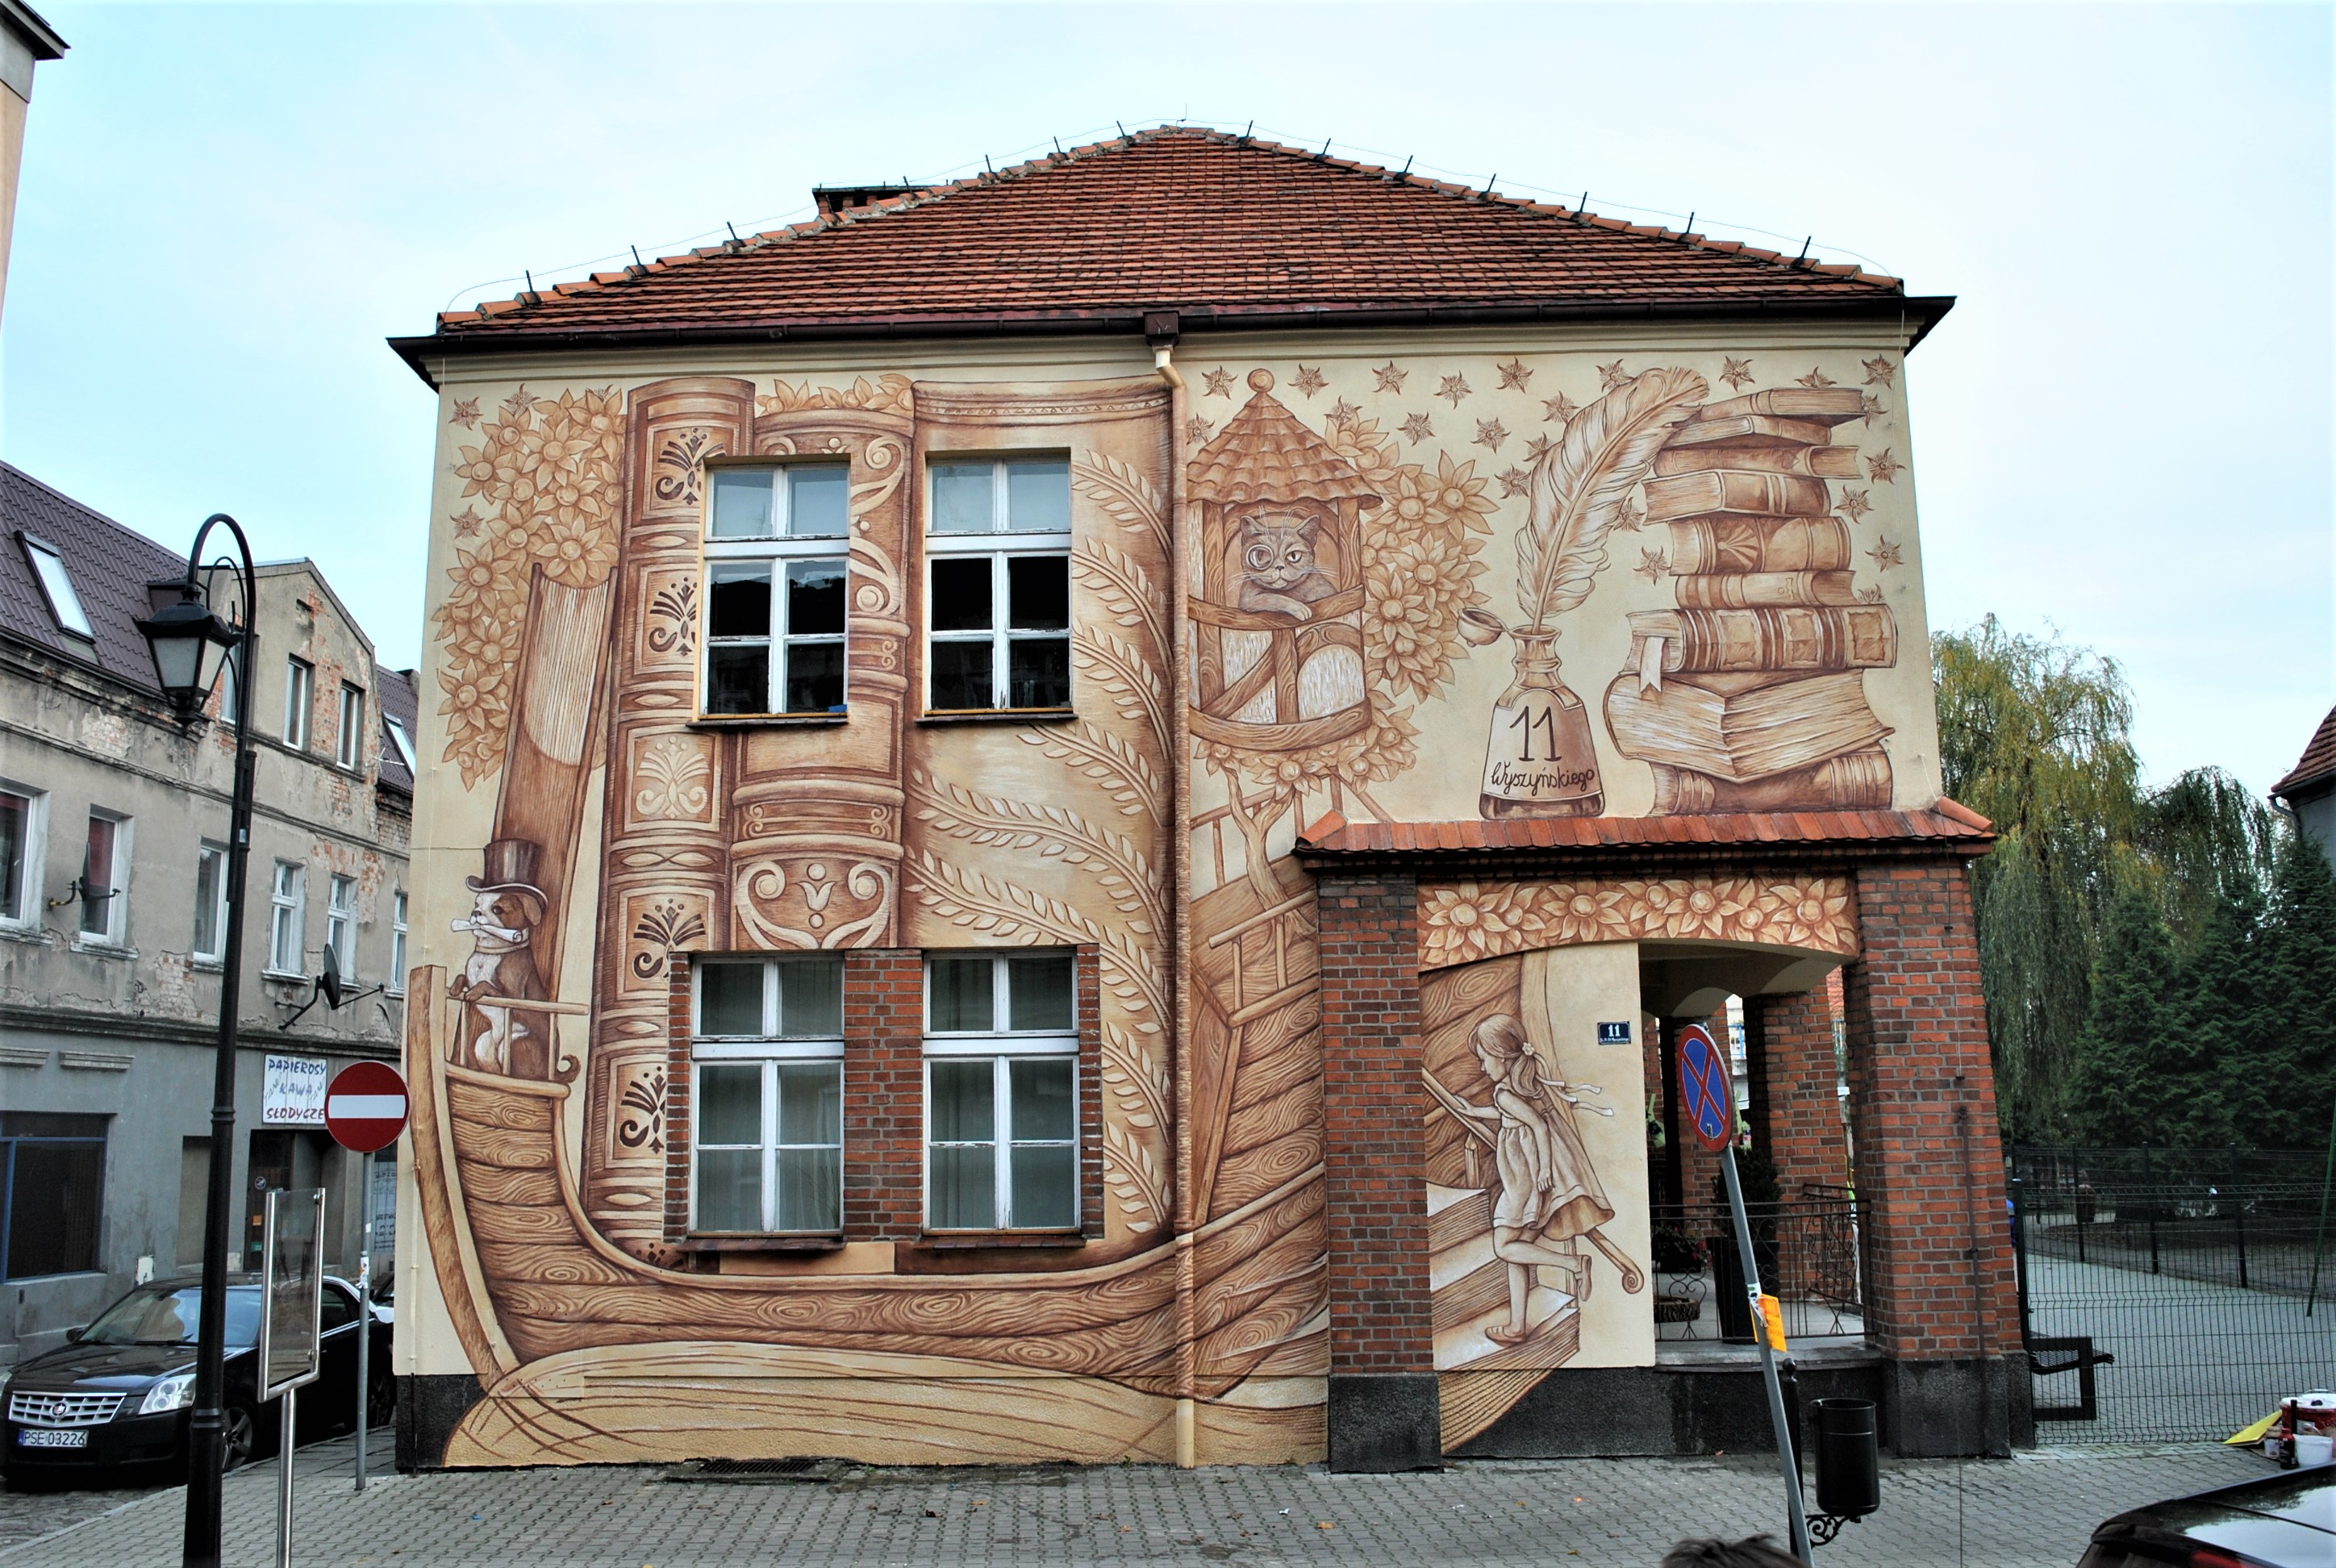 """BOOK ADWENTURES"" by Wow Wall Studio in Srem, Poland Artes & contextos book adwenture"